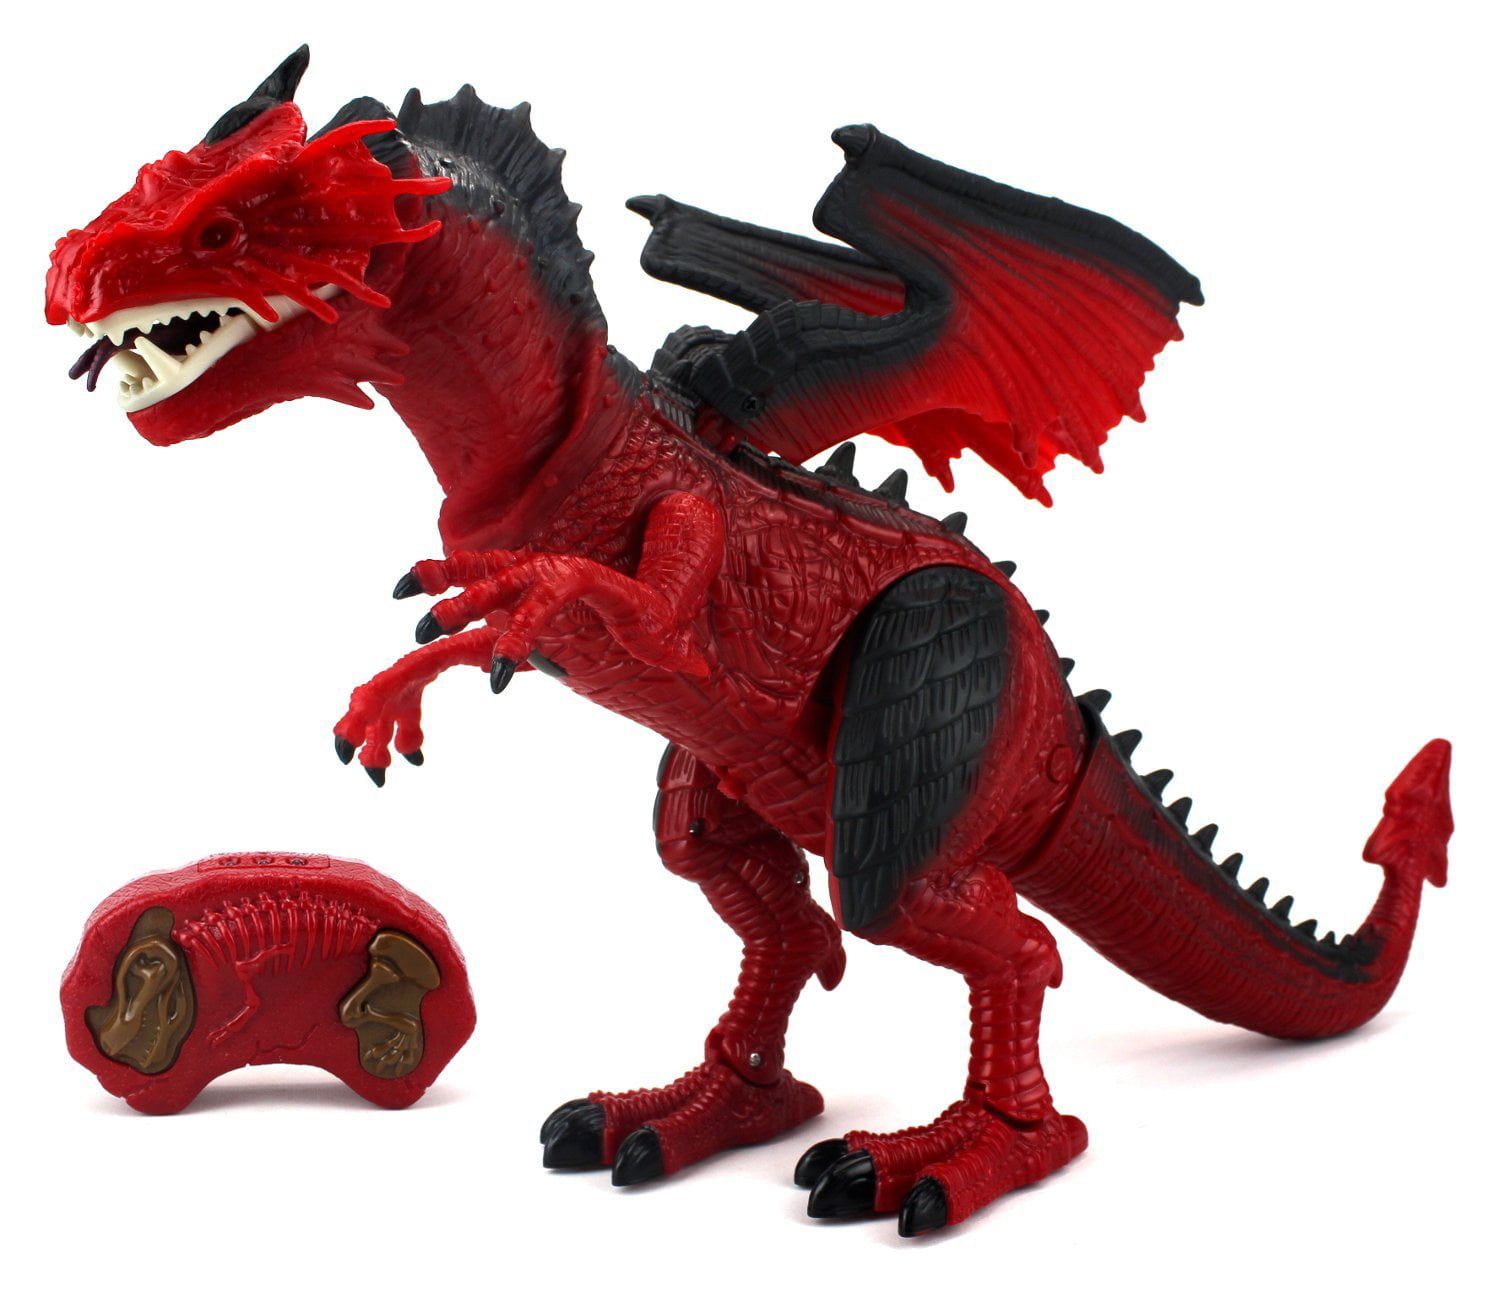 Dinosaur Planet Dragon Battery Operated Remote Control Walking Toy Dinosaur Figure w  Shaking Head, Walking... by Velocity Toys